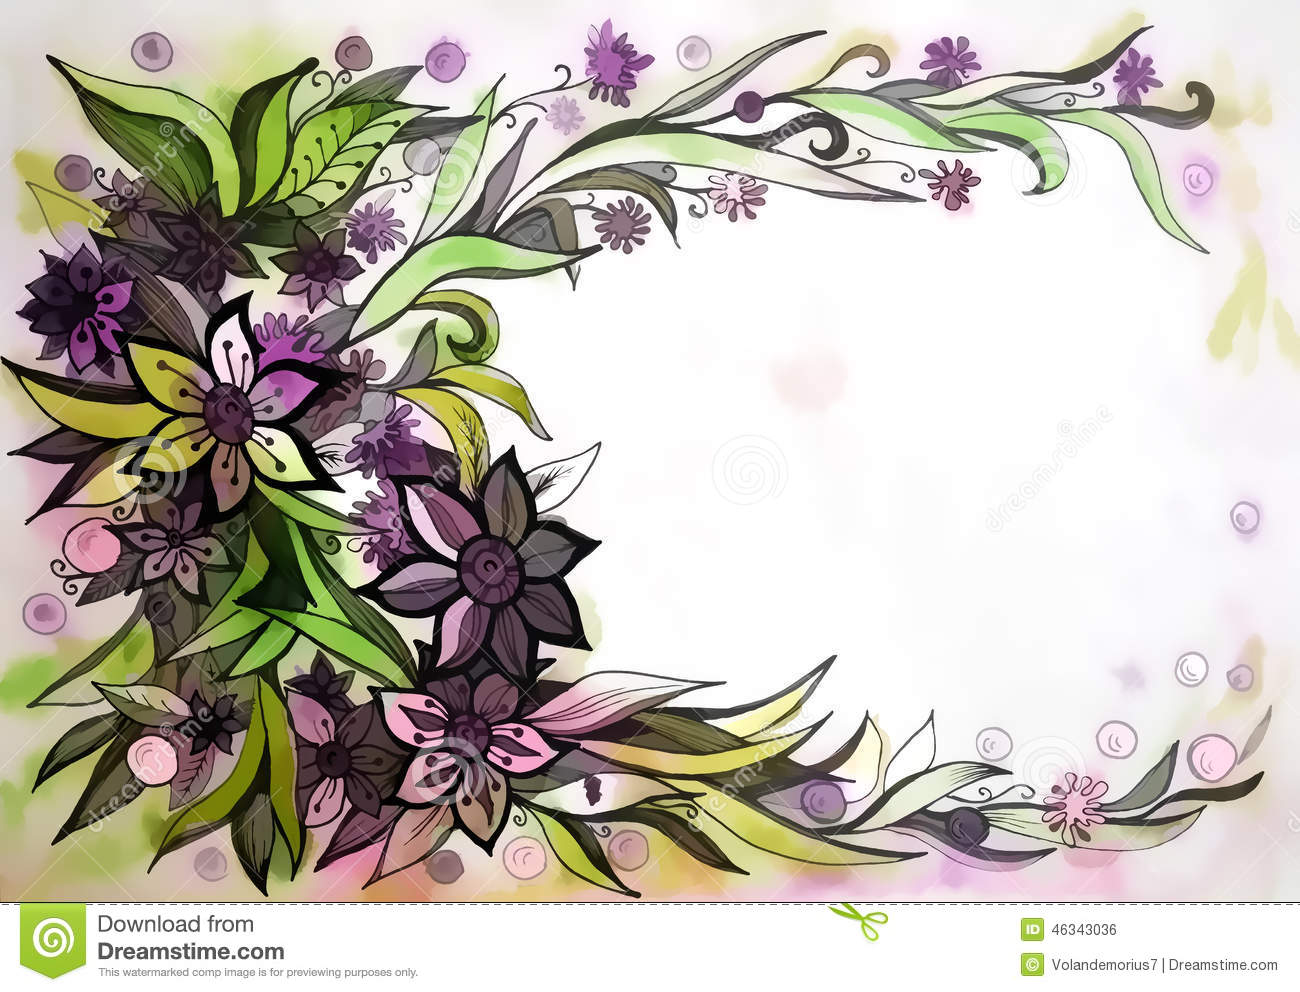 Beautiful graphic drawing of flowers stock illustration beautiful graphic design of flowers on watercolor background izmirmasajfo